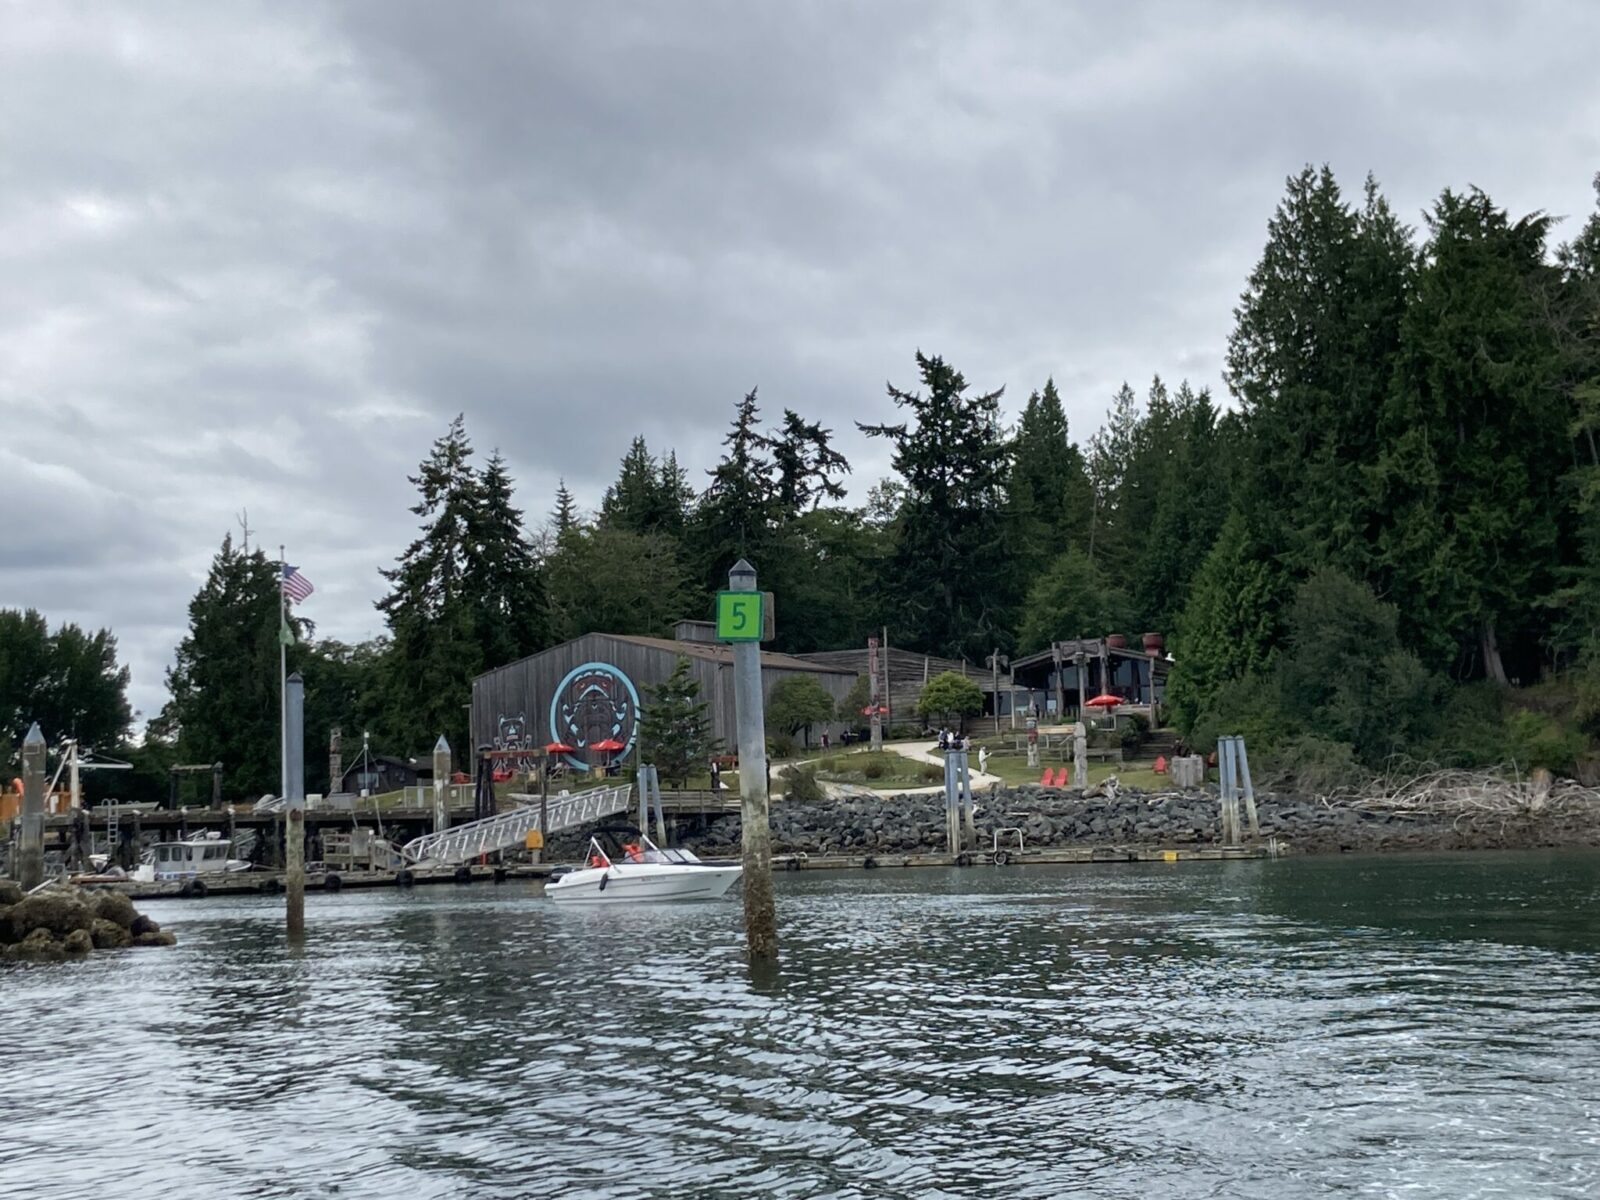 The entrance to a small marina in the forest on Blake Island. There is a building with Northwest Coast art painted on the side facing the marina